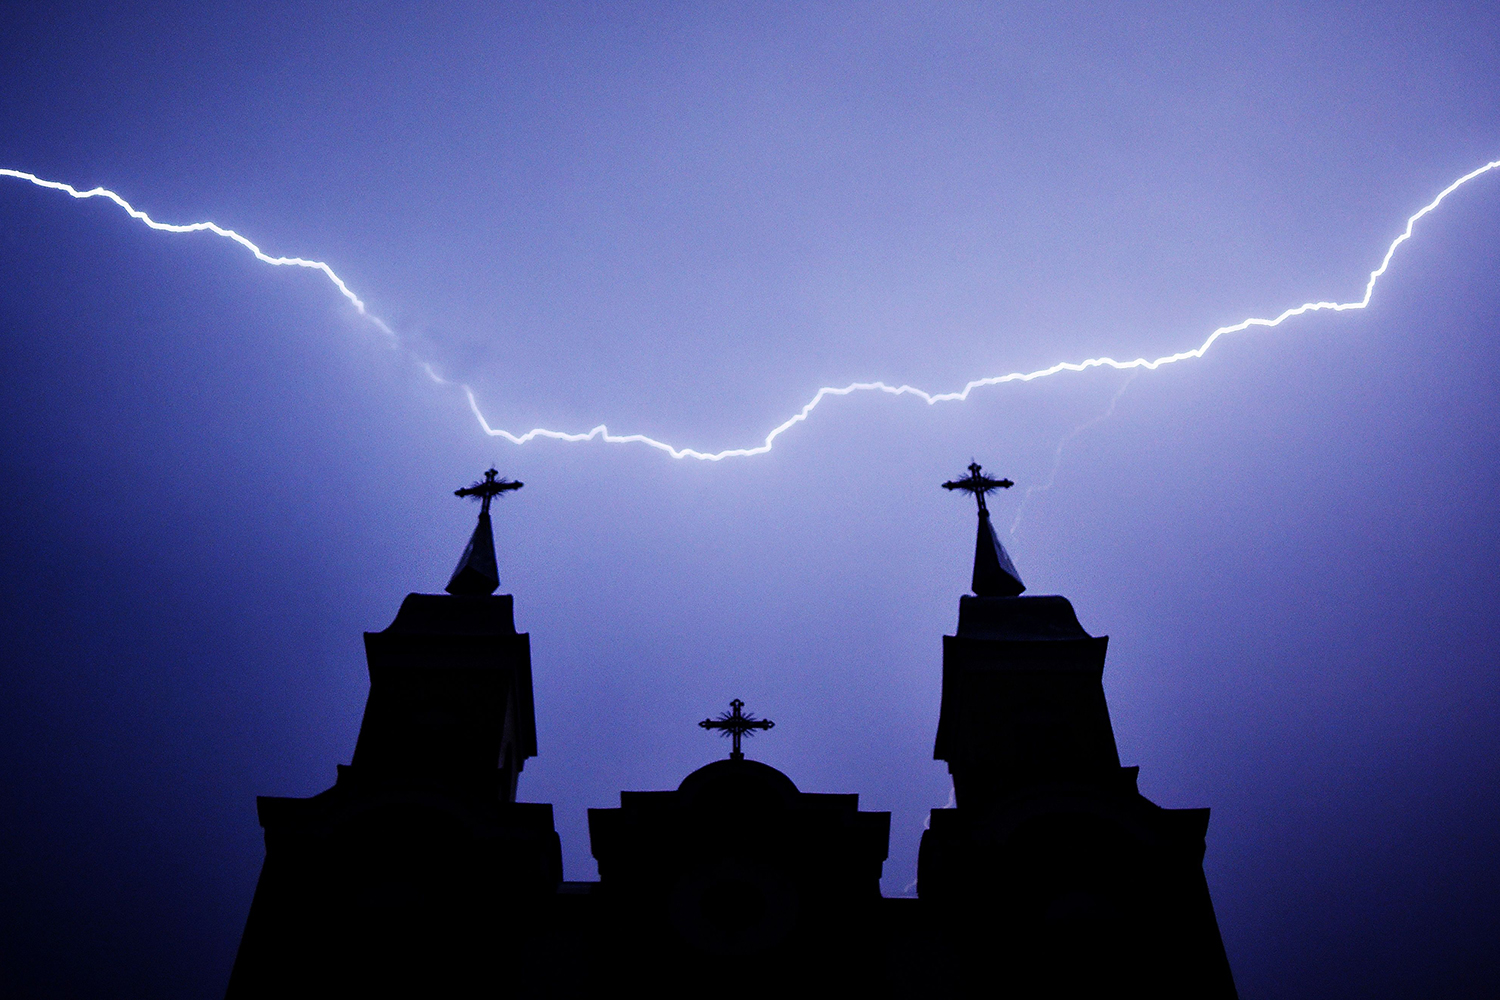 Lightning strikes are seen above a Catholic church during a thunderstorm in the village of Kreva, Belarus, on June 9. SERGEI GAPON/AFP via Getty Images